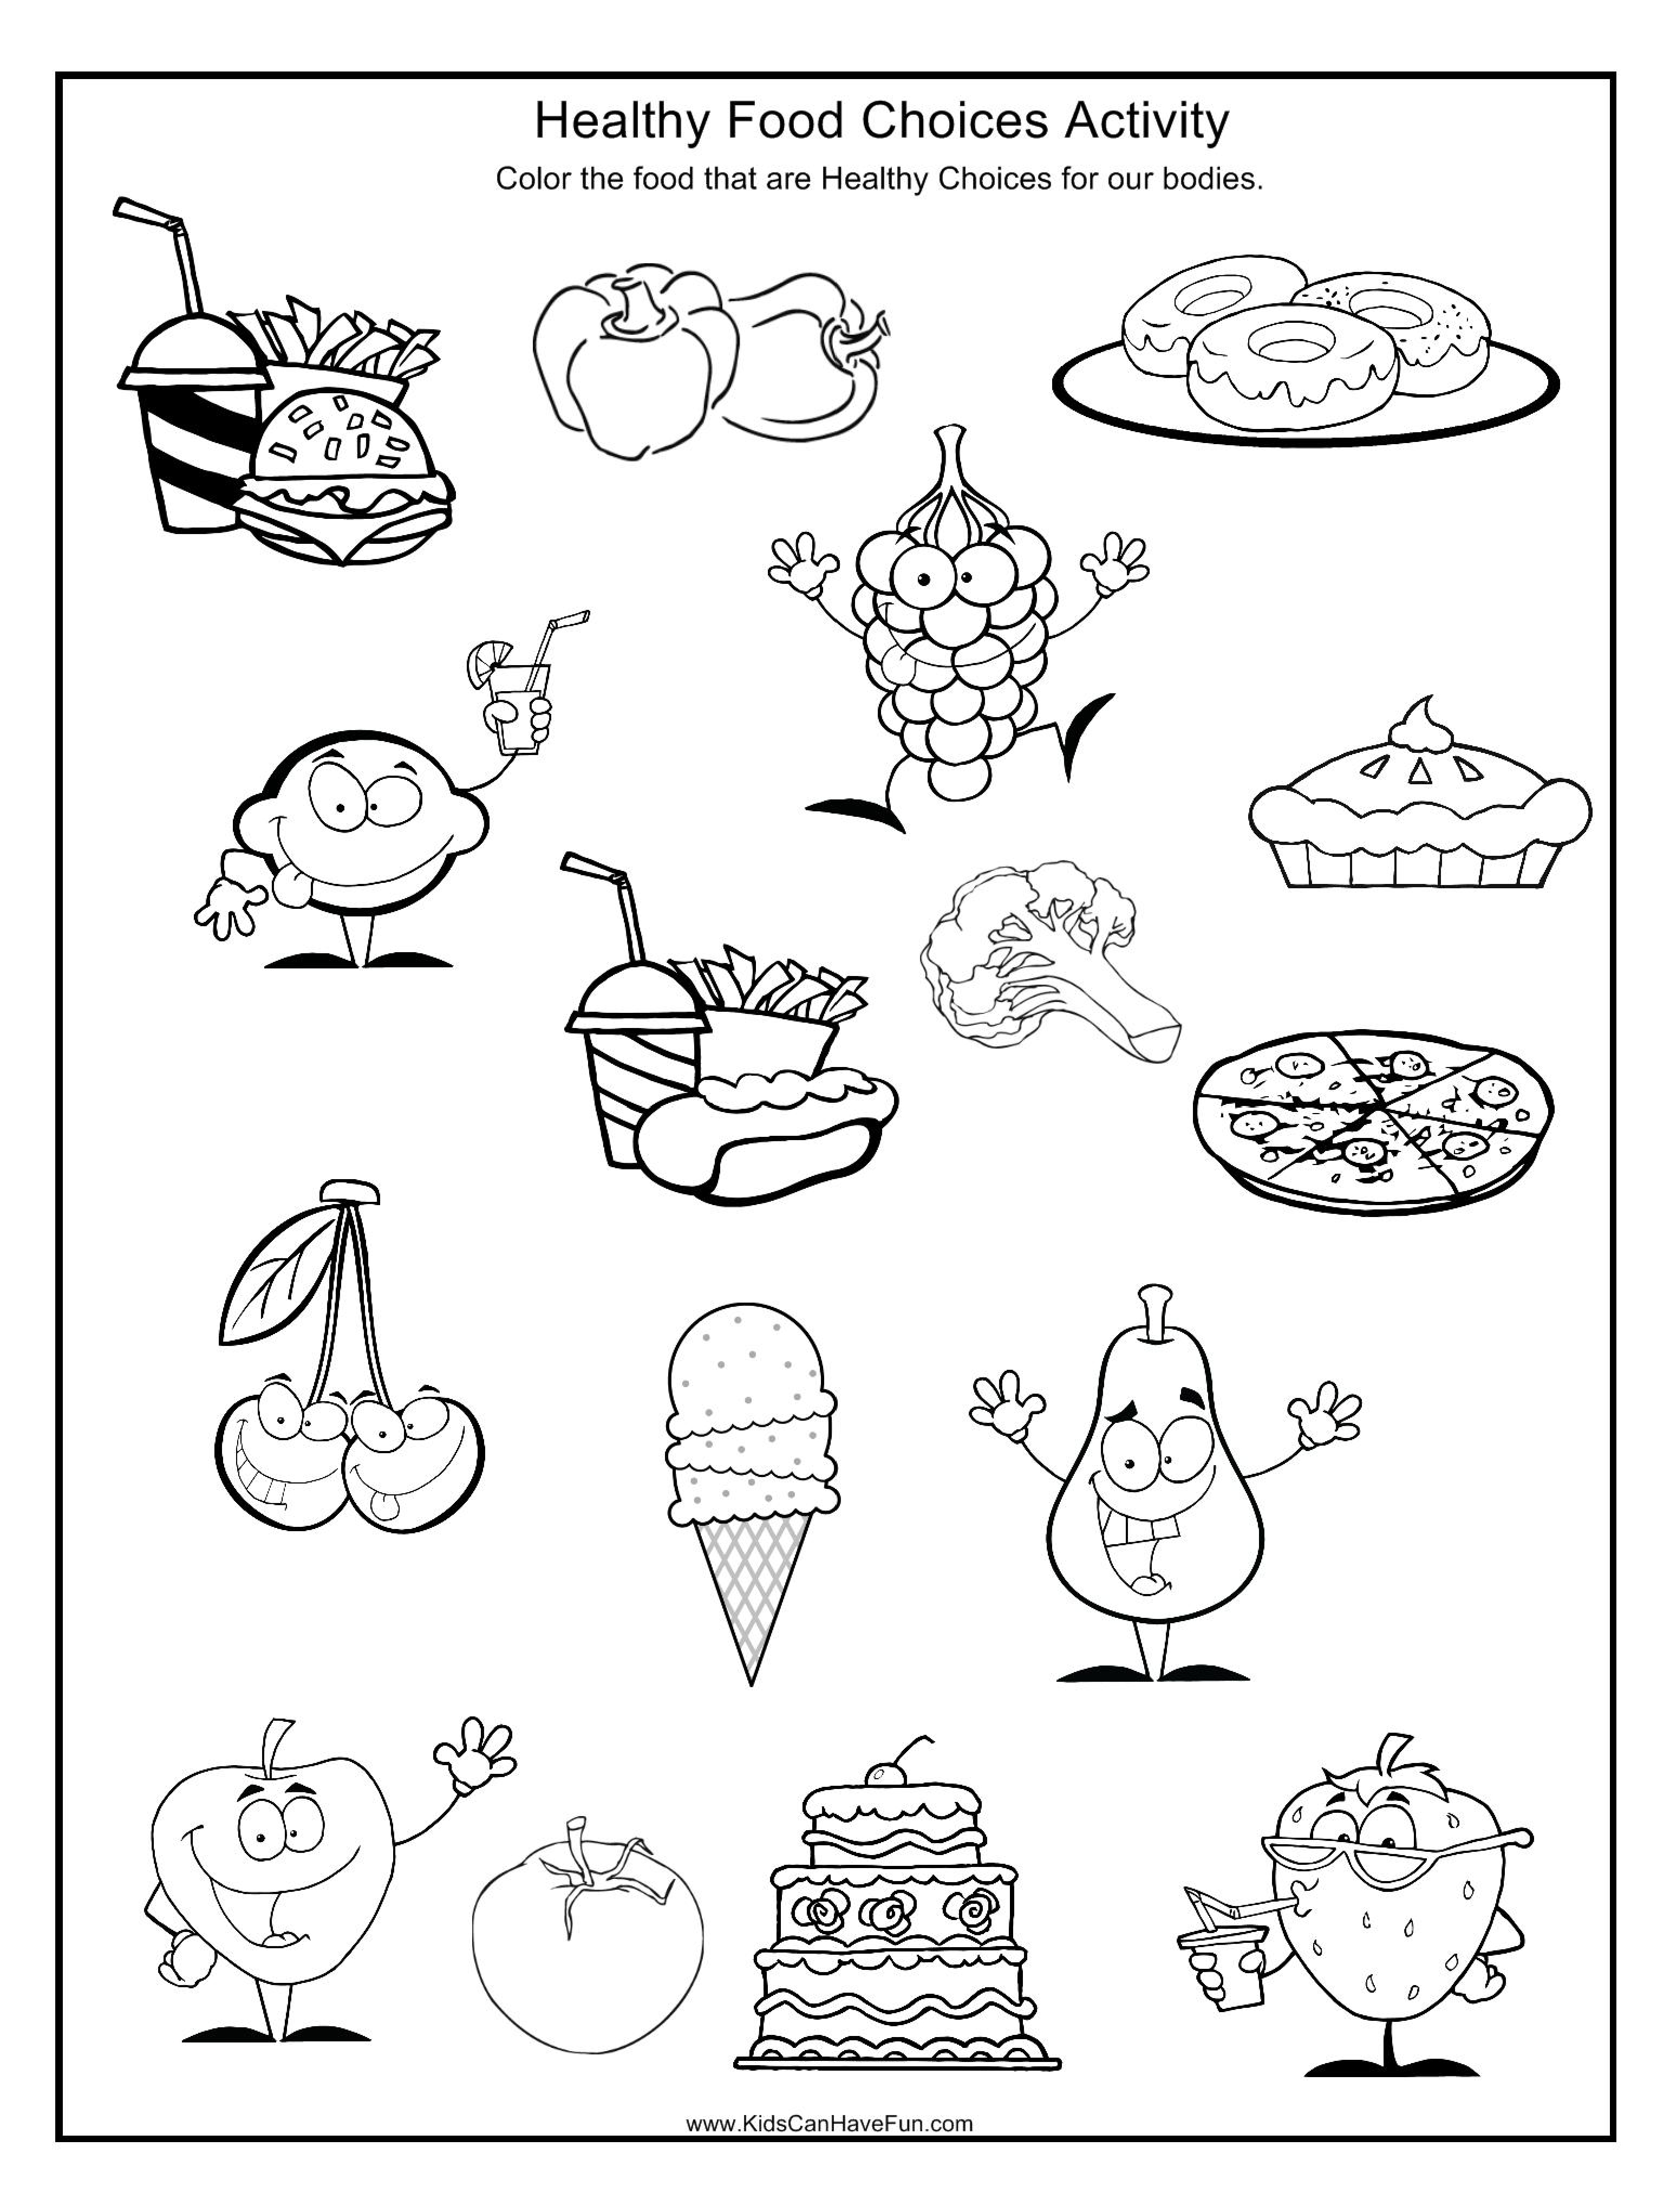 Pindebbie Yoho On Coloring Sheets | Healthy, Unhealthy Food - Free Printable Healthy Eating Worksheets